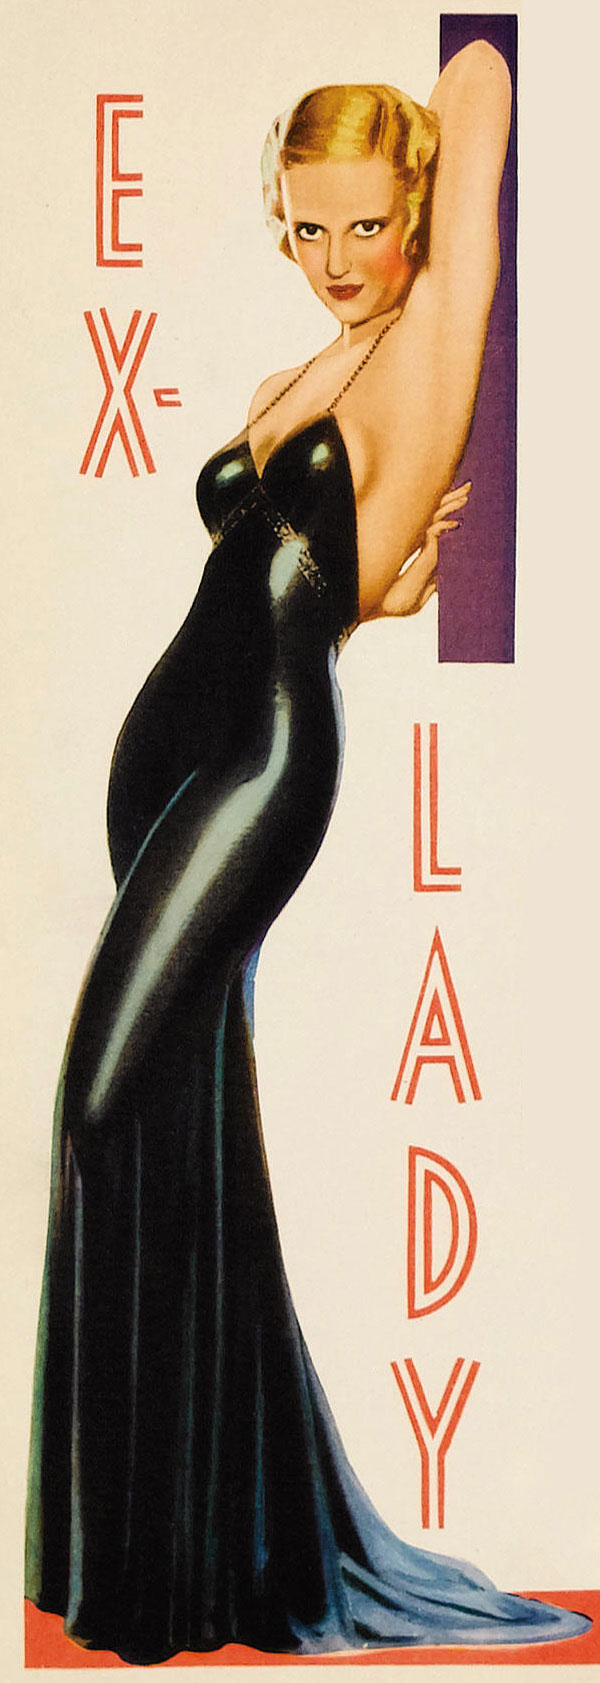 Bette Davis in Ex-Lady, 1933 poster card